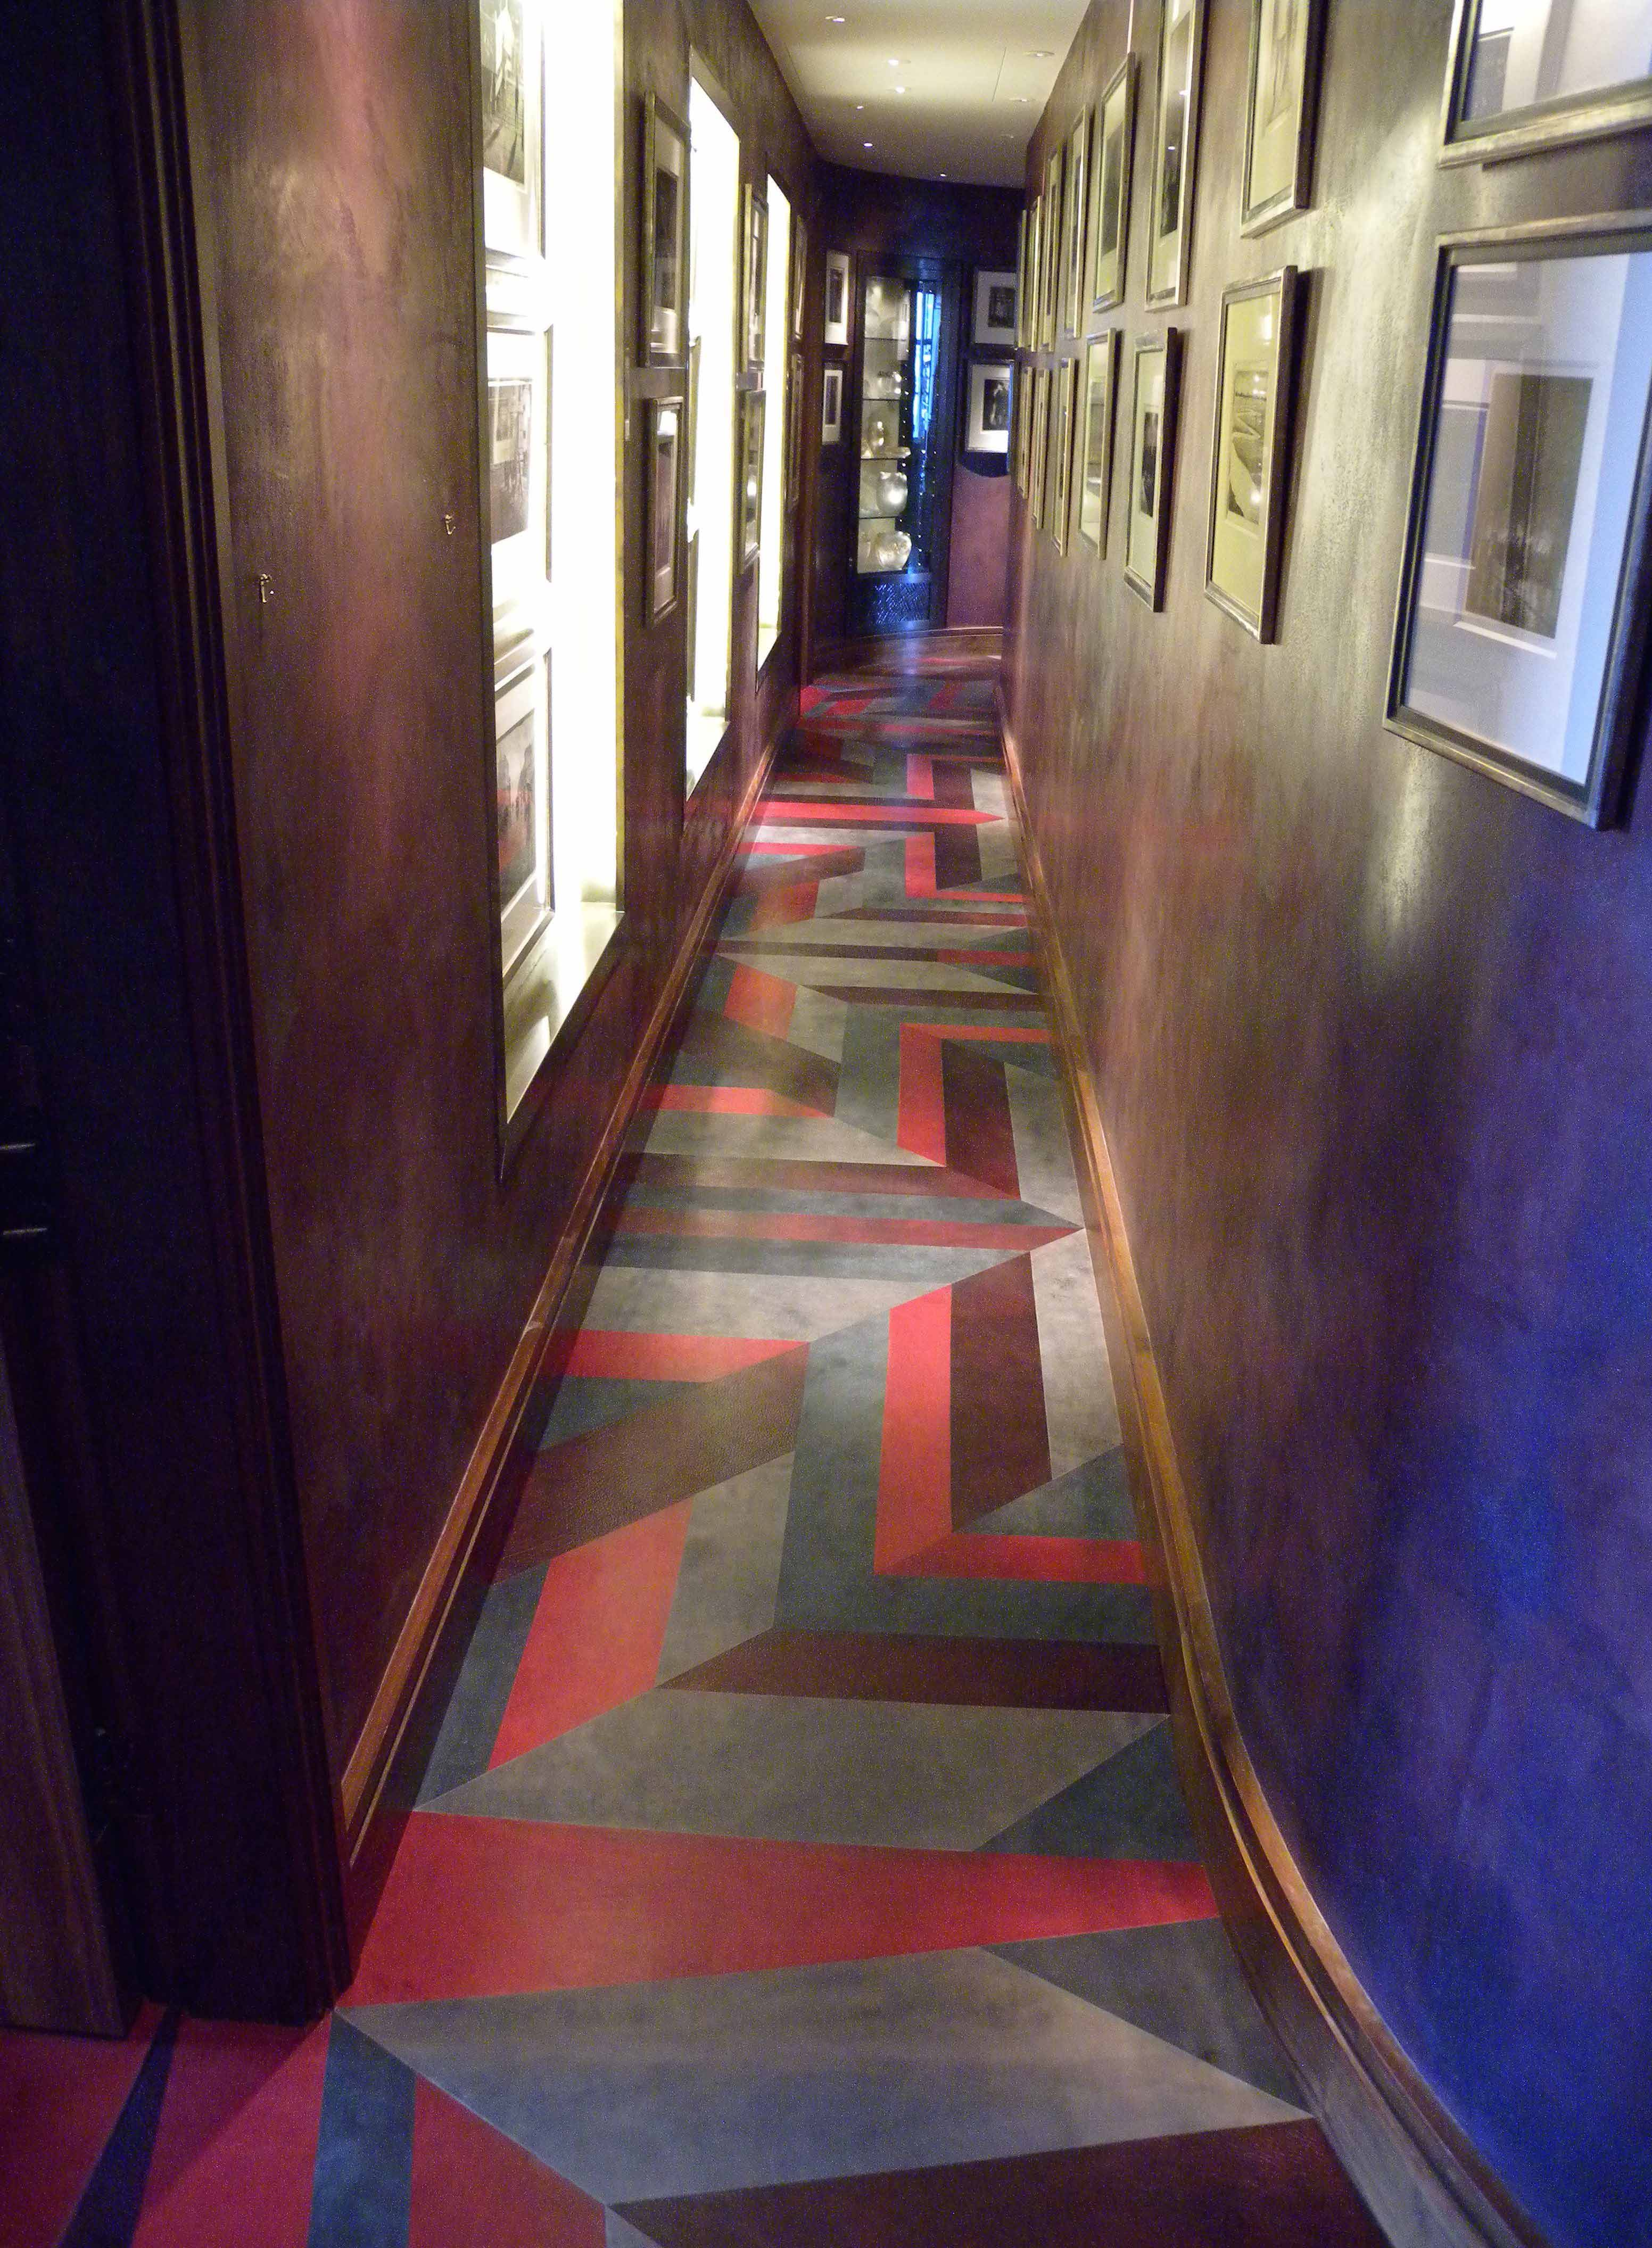 The mosaic floor of the hallway, complete with three vegetable-tanned leathers.